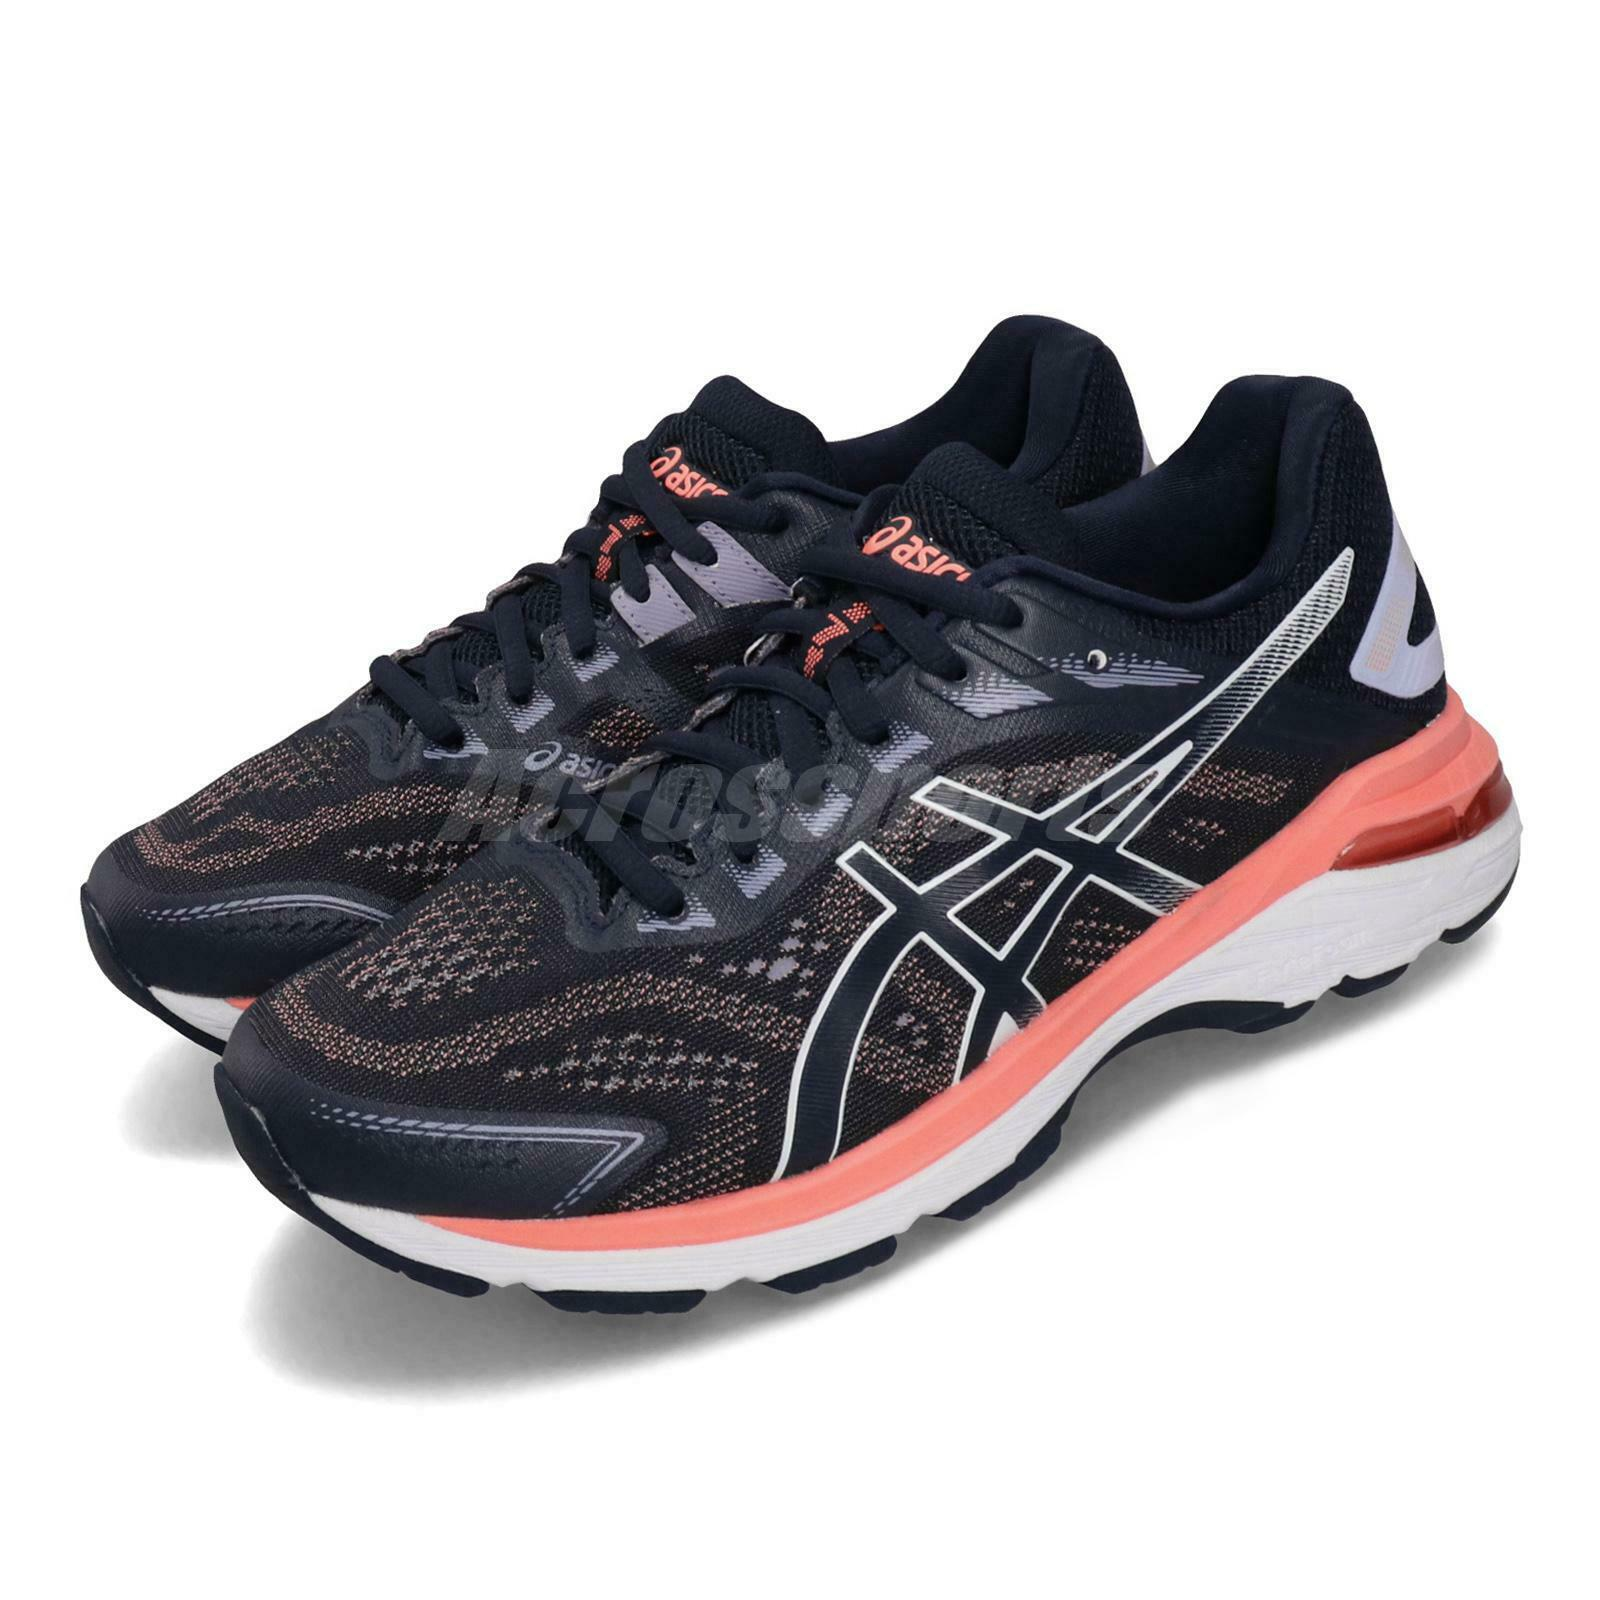 Asics GT2000 7 D Wide Midnight Navy Coral donna correrening sautope 1012A146402